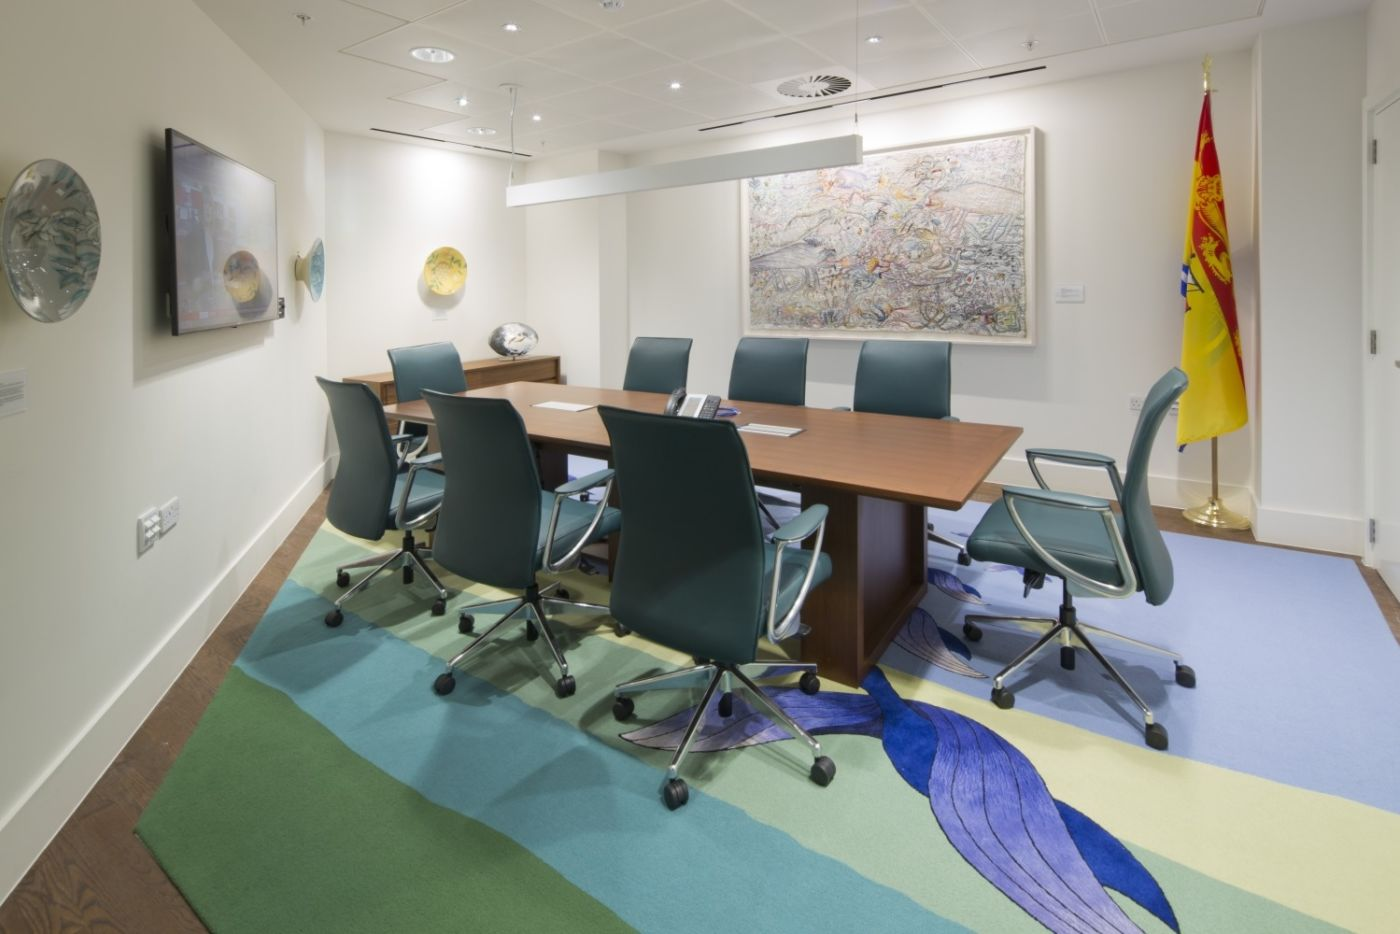 Office fit out of meeting room